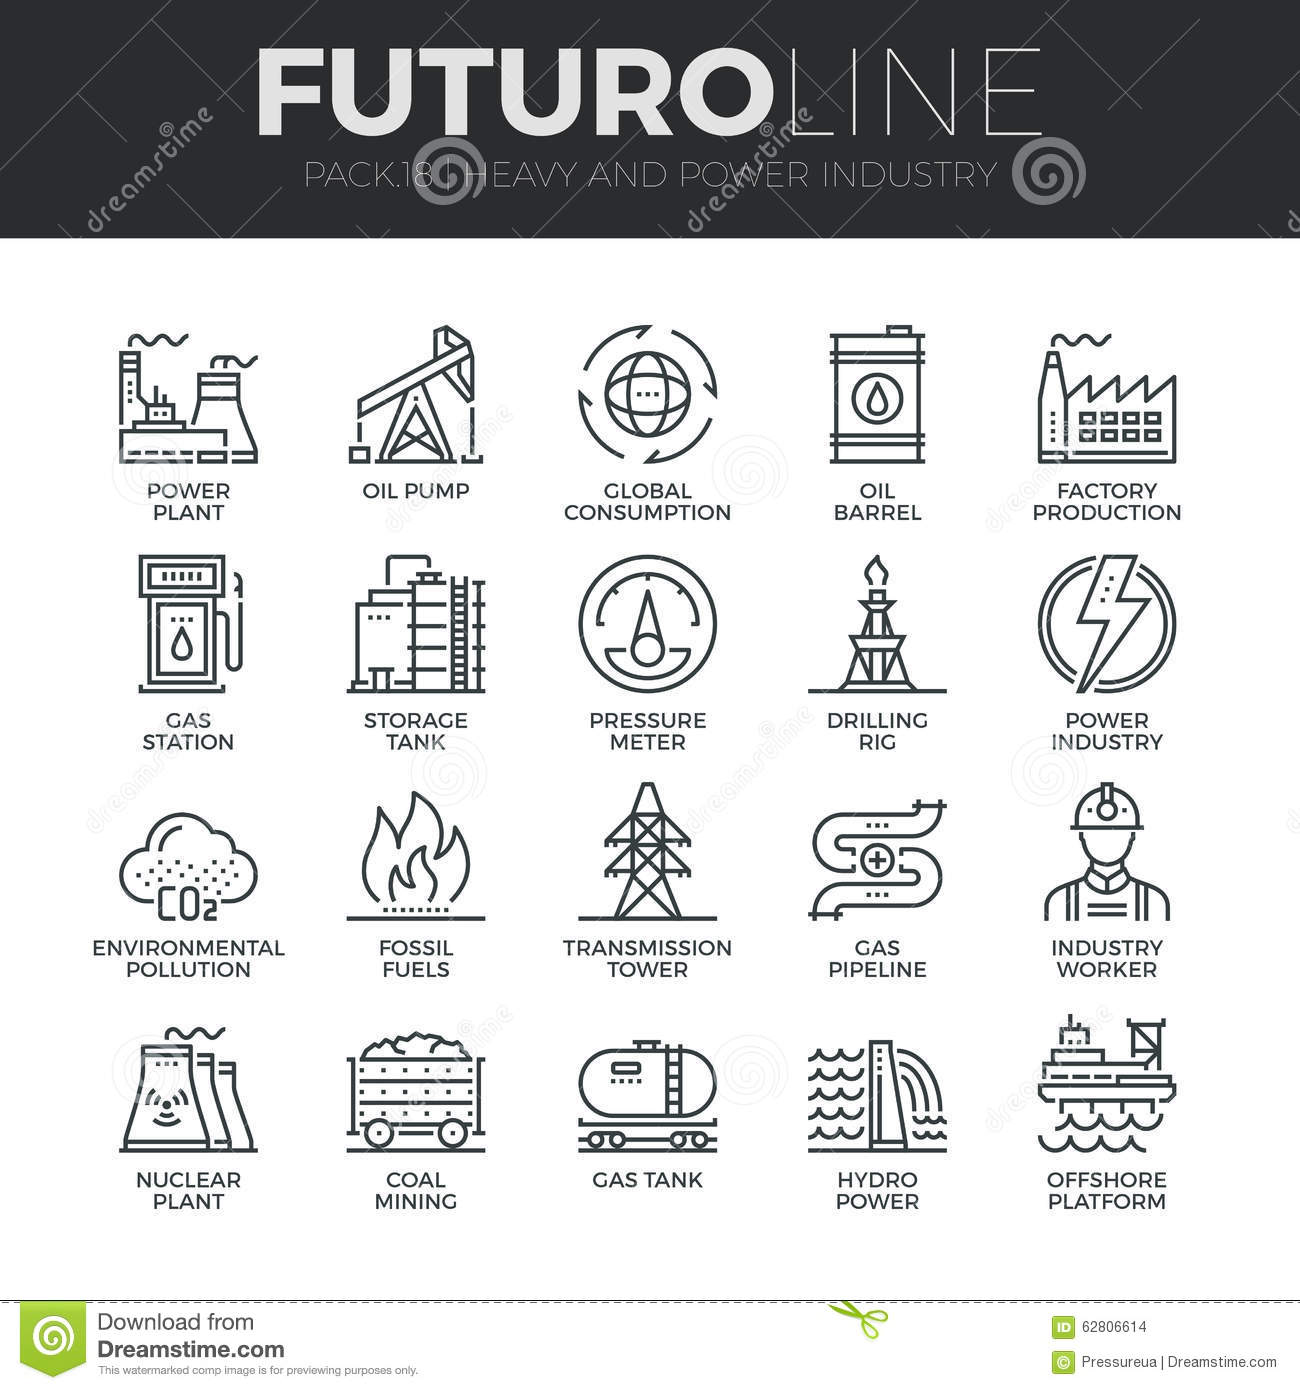 Heavy And Power Industry Futuro Line Icons Set Stock Vector ...